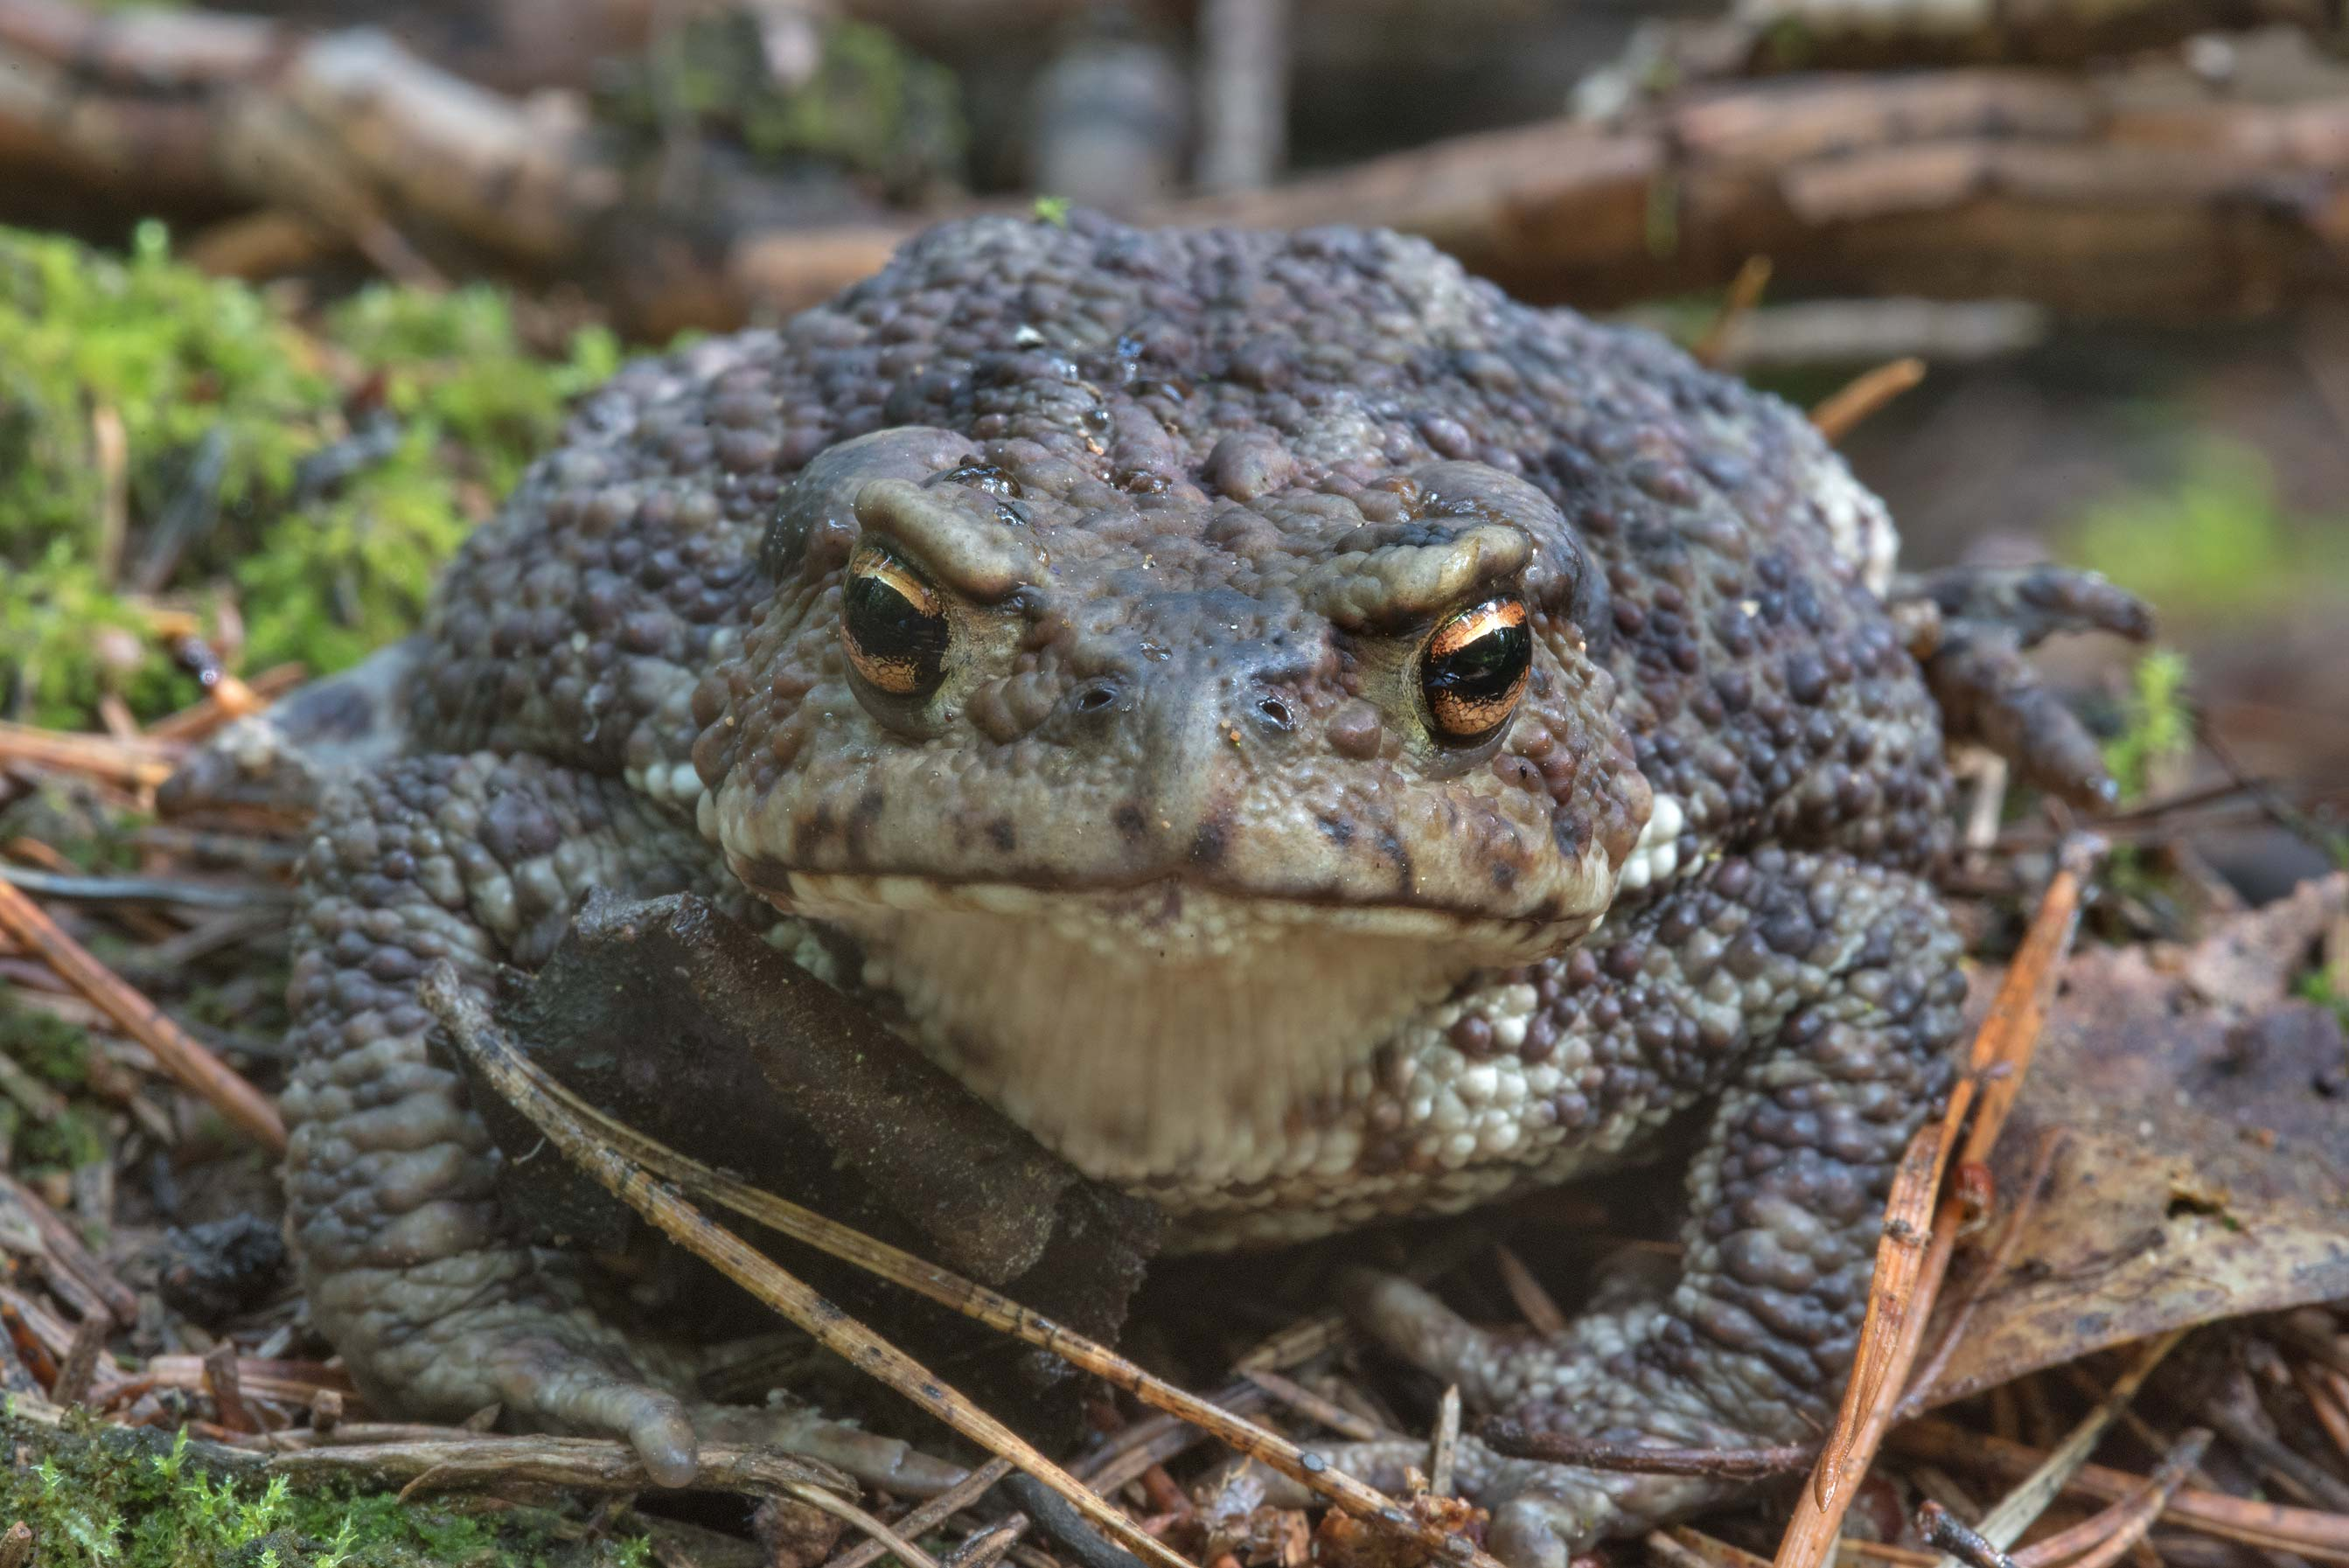 Toad's face in Lembolovo, 35 miles north from St.Petersburg. Russia